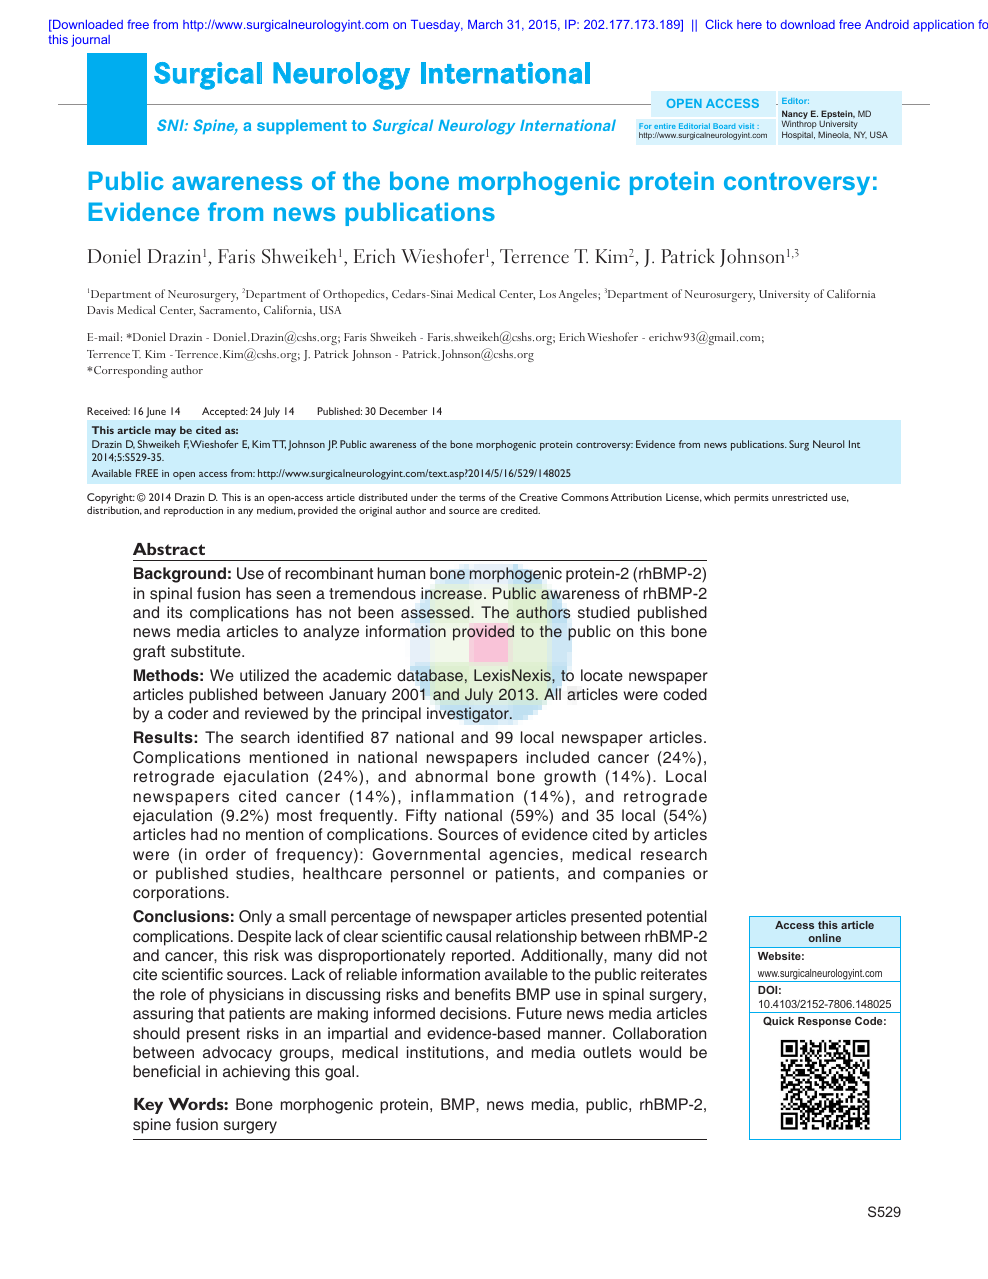 Public awareness of the bone morphogenic protein controversy